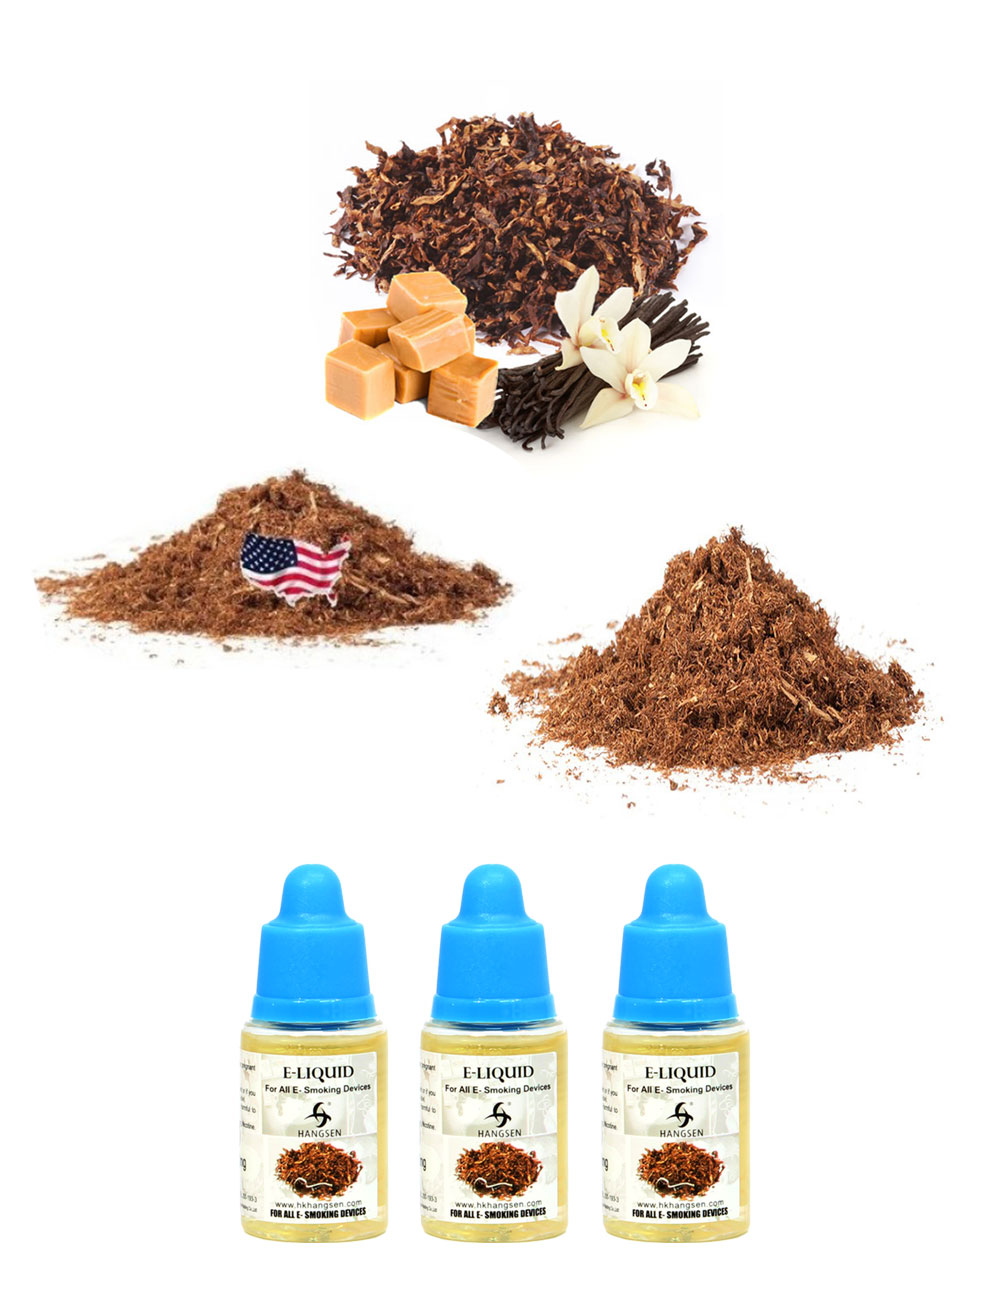 Hangsen 12mg tobacco e liquid bundle